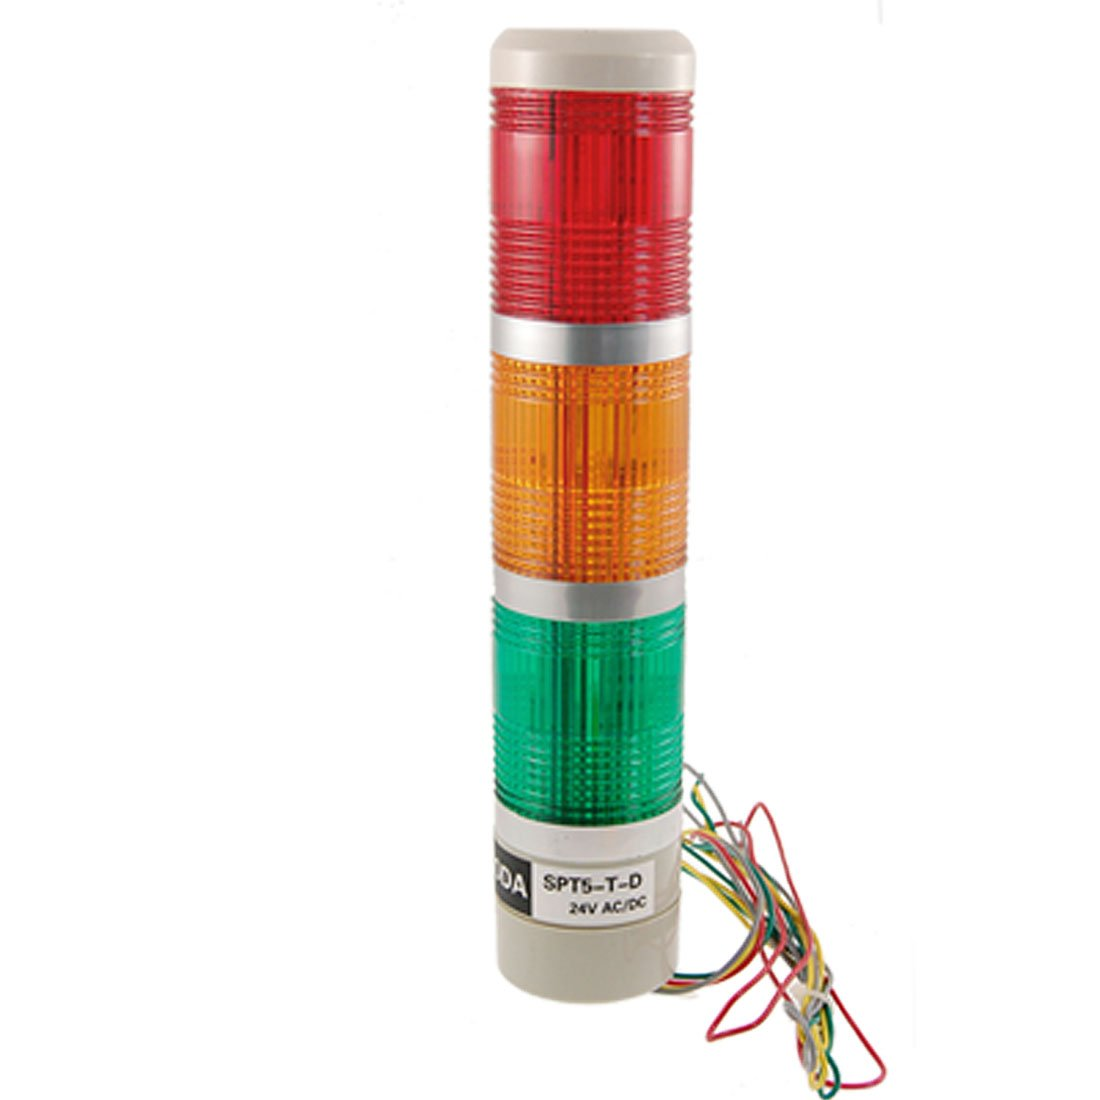 uxcell® uxcellAC/DC 24V Industry Tower Signal Safety Stack Indicator Alarm Light US-SA-AJD-11270